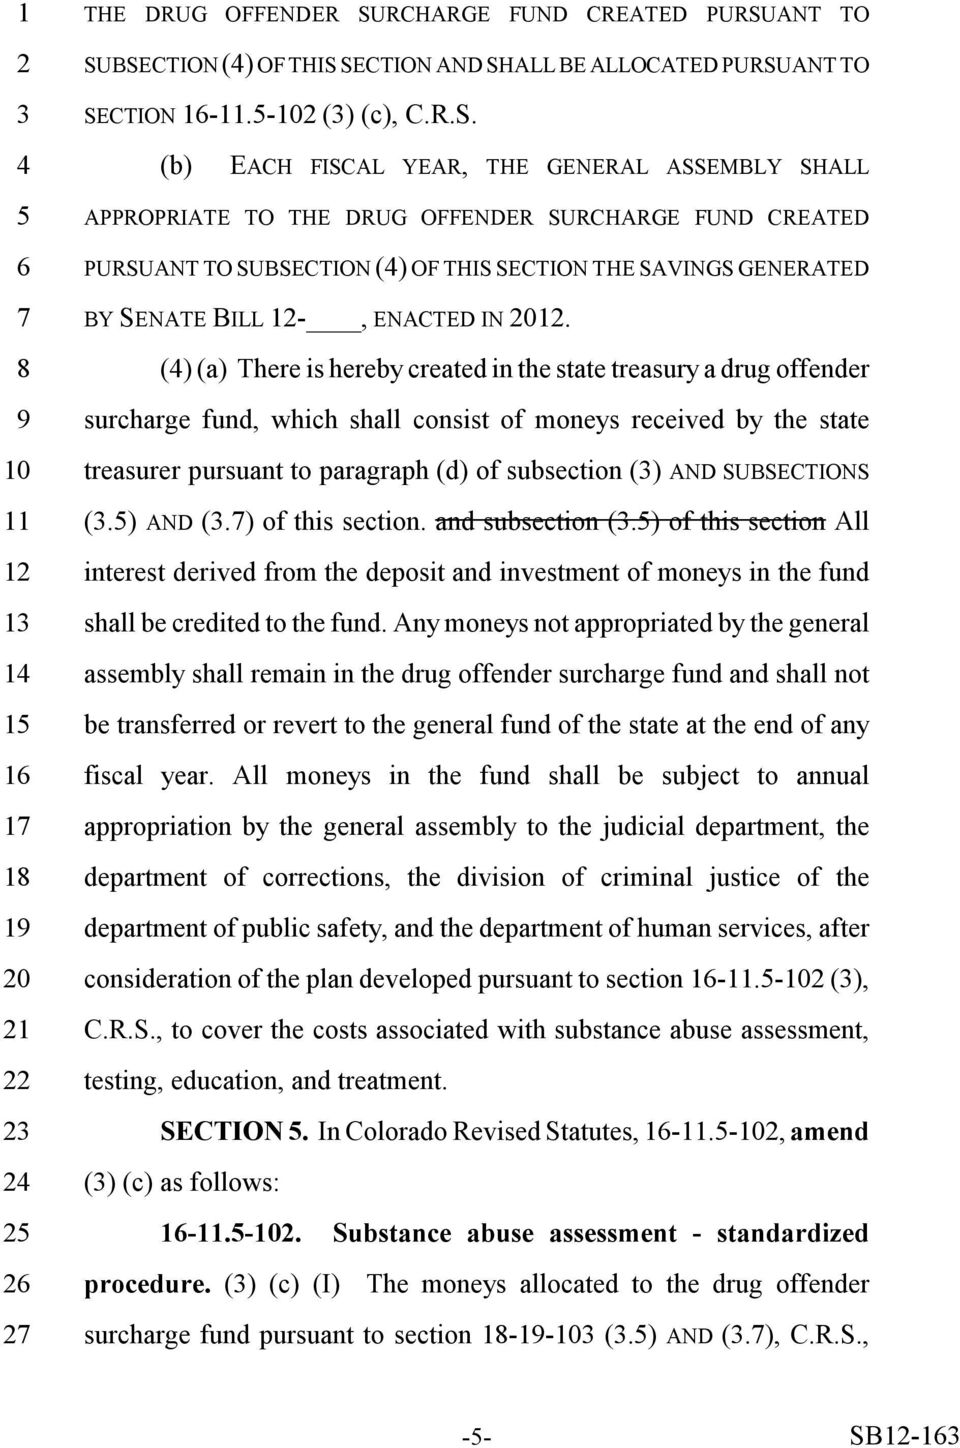 ANT TO SUBSECTION () OF THIS SECTION AND SHALL BE ALLOCATED PURSUANT TO SECTION 1-.- () (c), C.R.S. (b) EACH FISCAL YEAR, THE GENERAL ASSEMBLY SHALL APPROPRIATE TO THE DRUG OFFENDER SUANT TO SUBSECTION () OF THIS SECTION THE SAVINGS GENERATED BY SENATE BILL -, ENACTED IN 0.